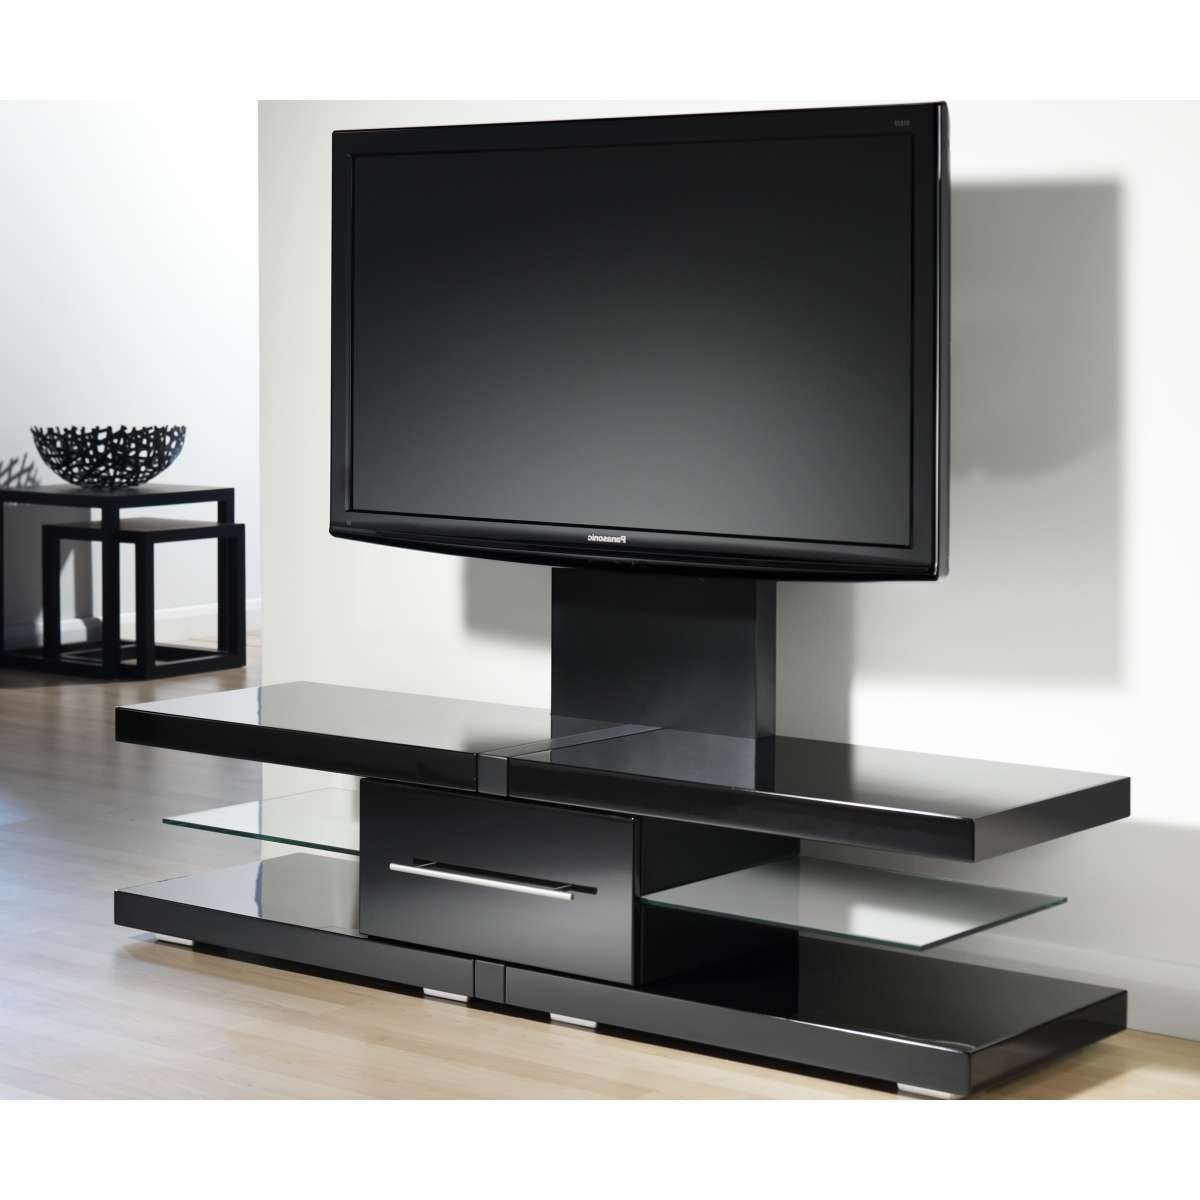 Modern Black Tone Wide Screen Tv Stand With Display Shelves And With Regard To Wide Screen Tv Stands (View 13 of 15)